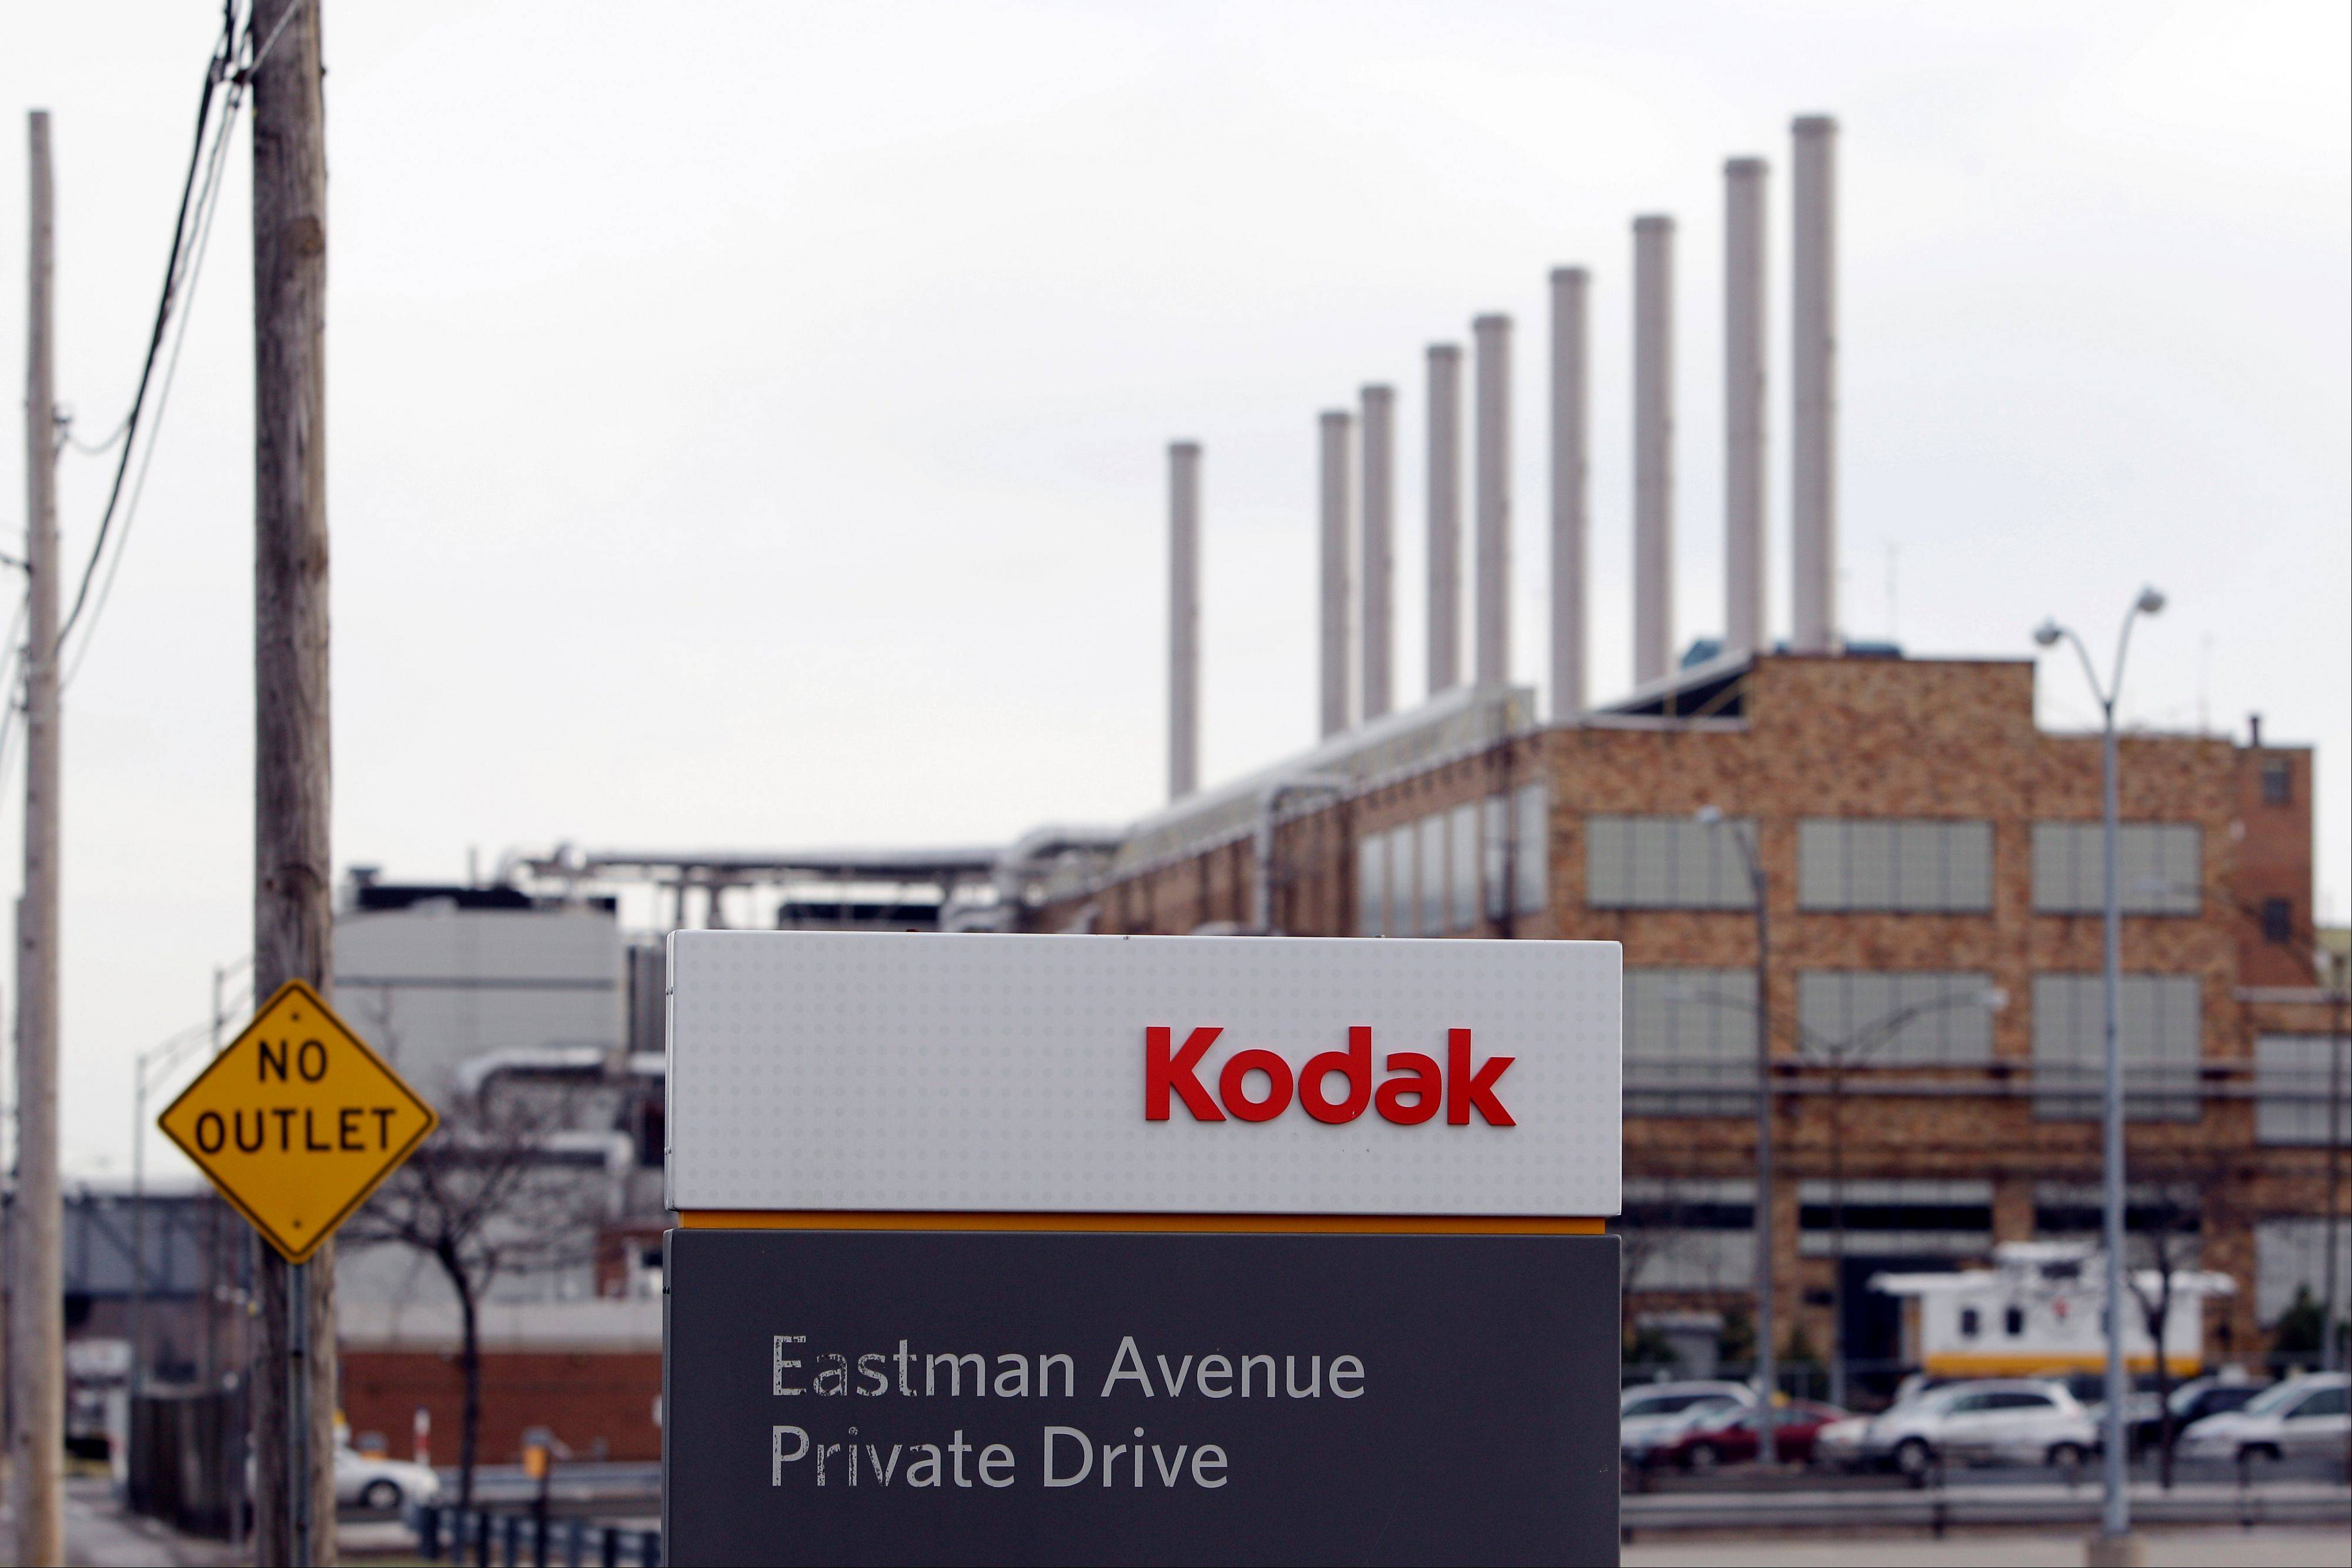 FILE - This Jan. 6, 2012 file photo shows a Kodak factory in Rochester, N.Y. On Tuesday, Aug. 20, 2013, a federal judge approved Kodak�s plan to emerge from bankruptcy protection. The ruling paves the way for the photography pioneer to emerge from court oversight as a new company focused on commercial and packaging printing. The company has said it hopes to emerge from bankruptcy protection on Sept. 3, 2013. (AP Photo/David Duprey)